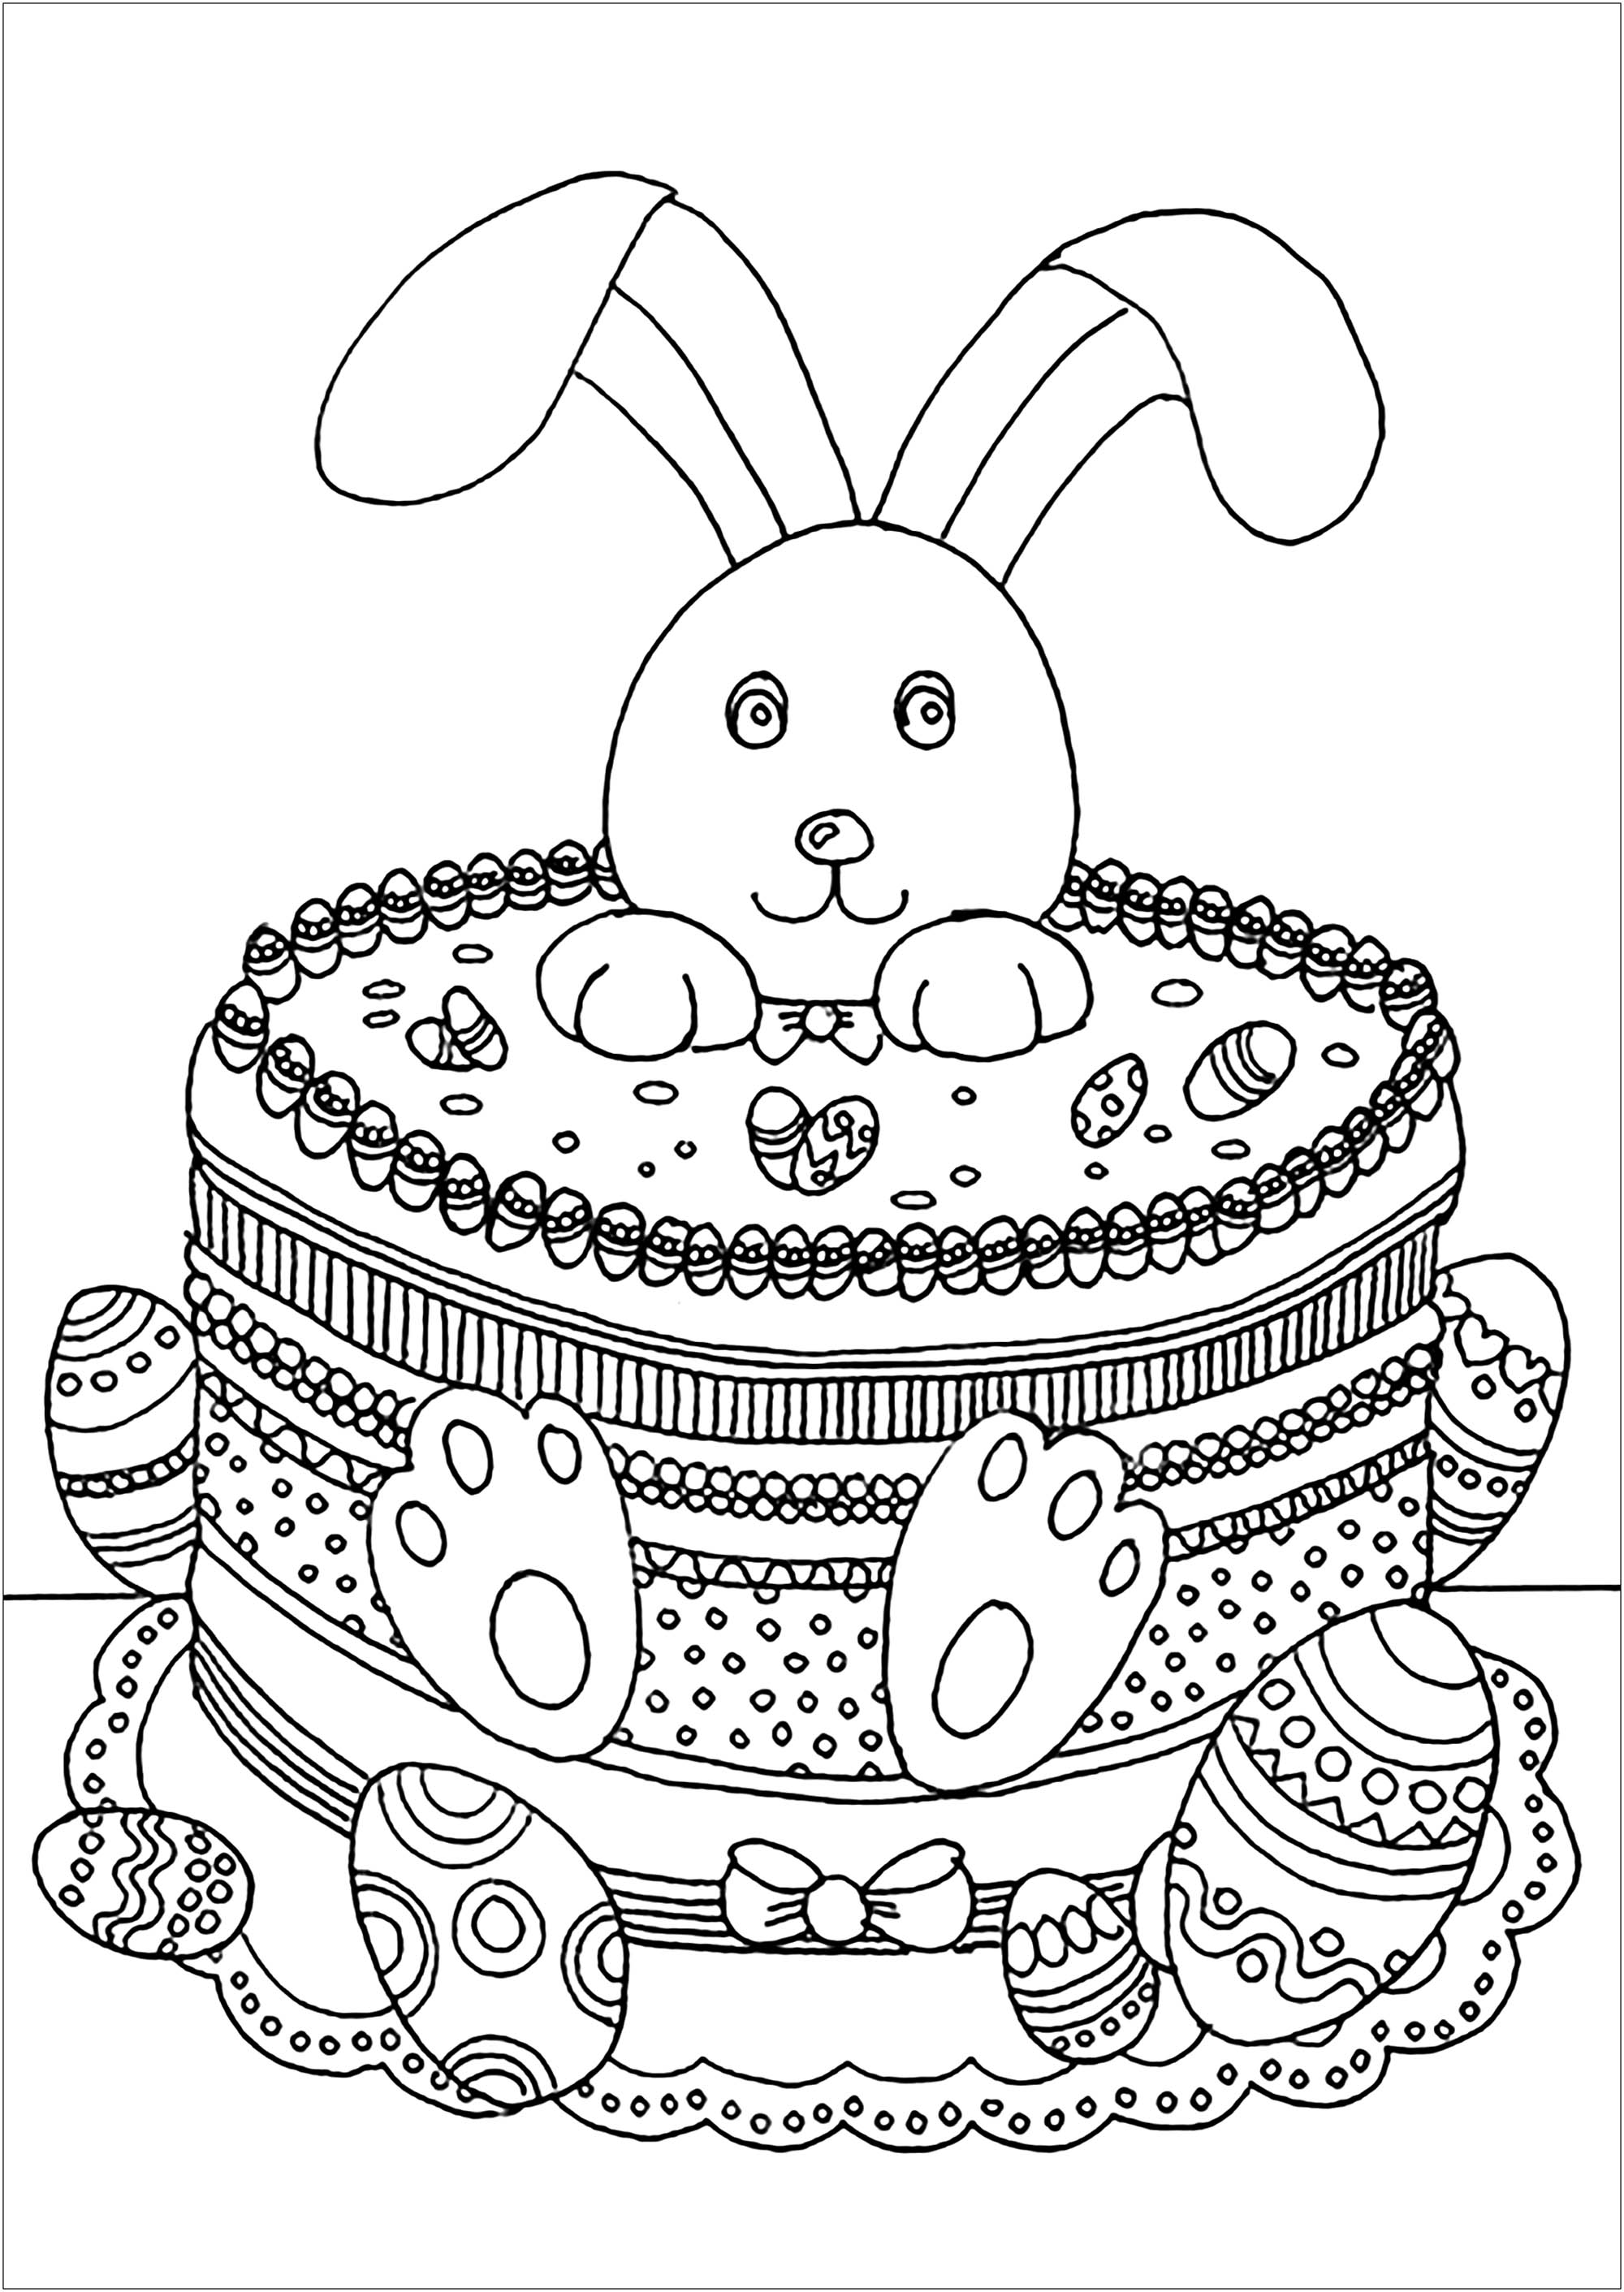 Easter coloring page with few details for kids